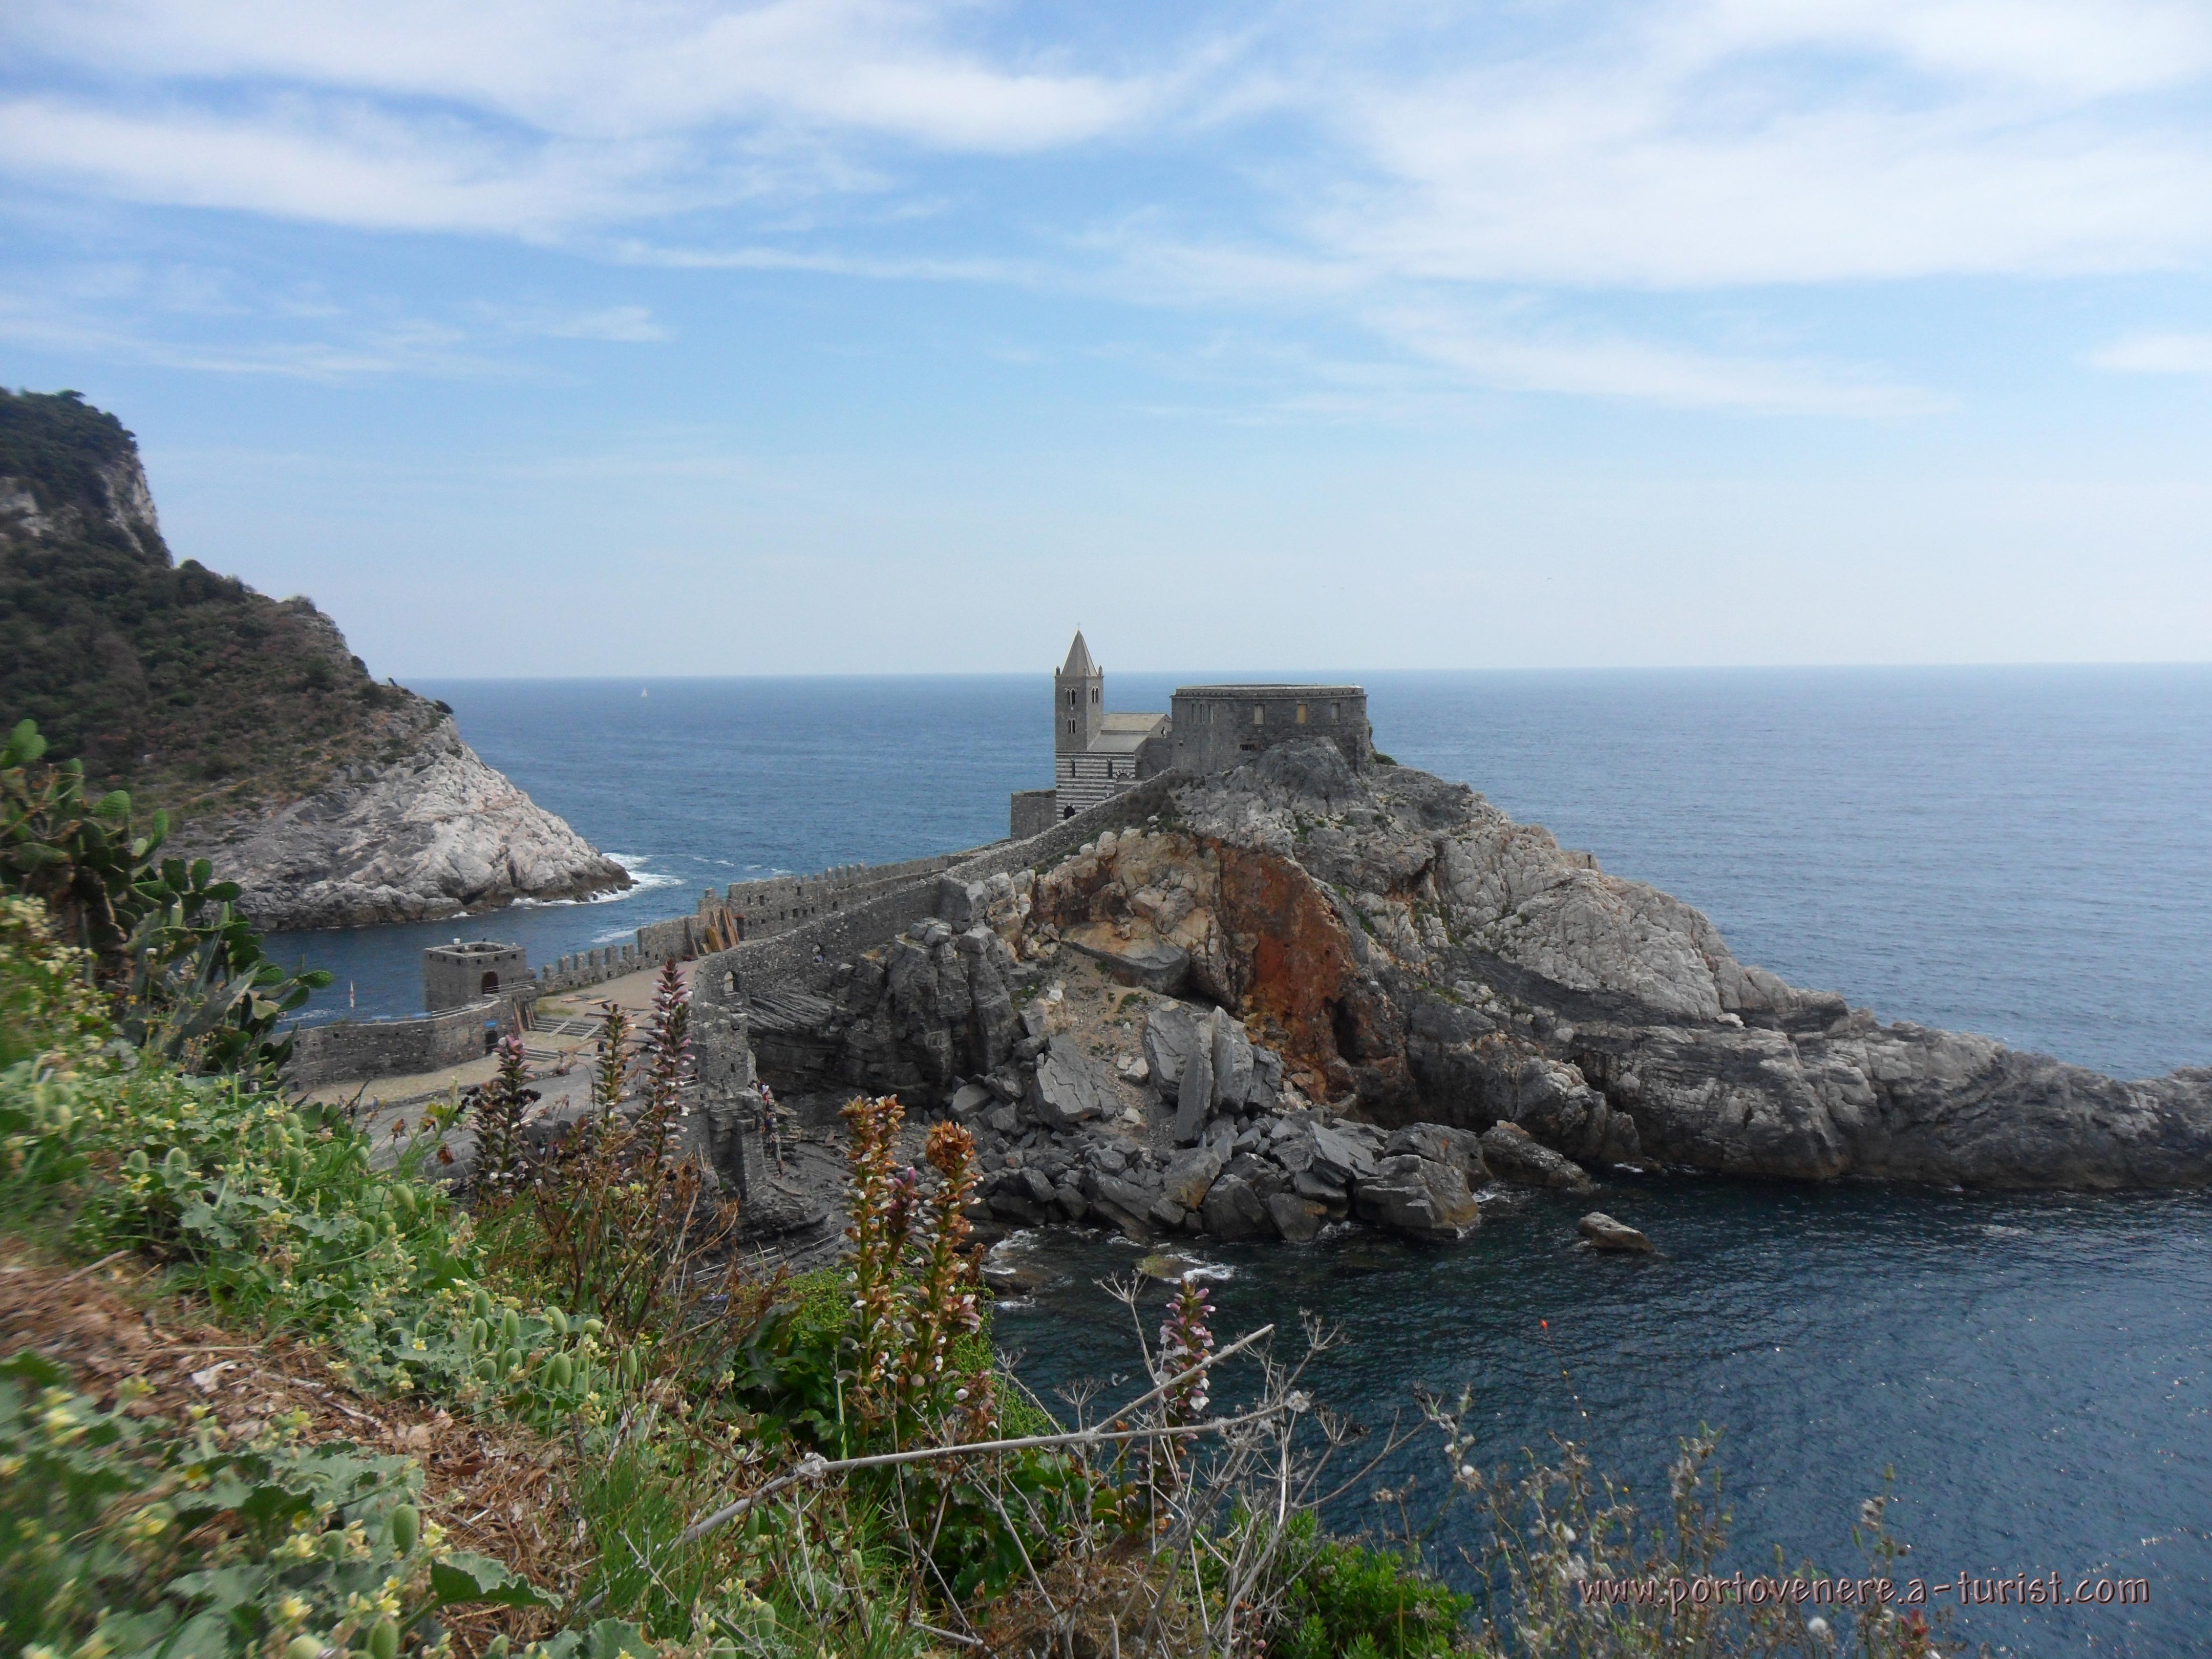 Portovenere - Church of San Pietro<br>4320x3240, 1.57 MB